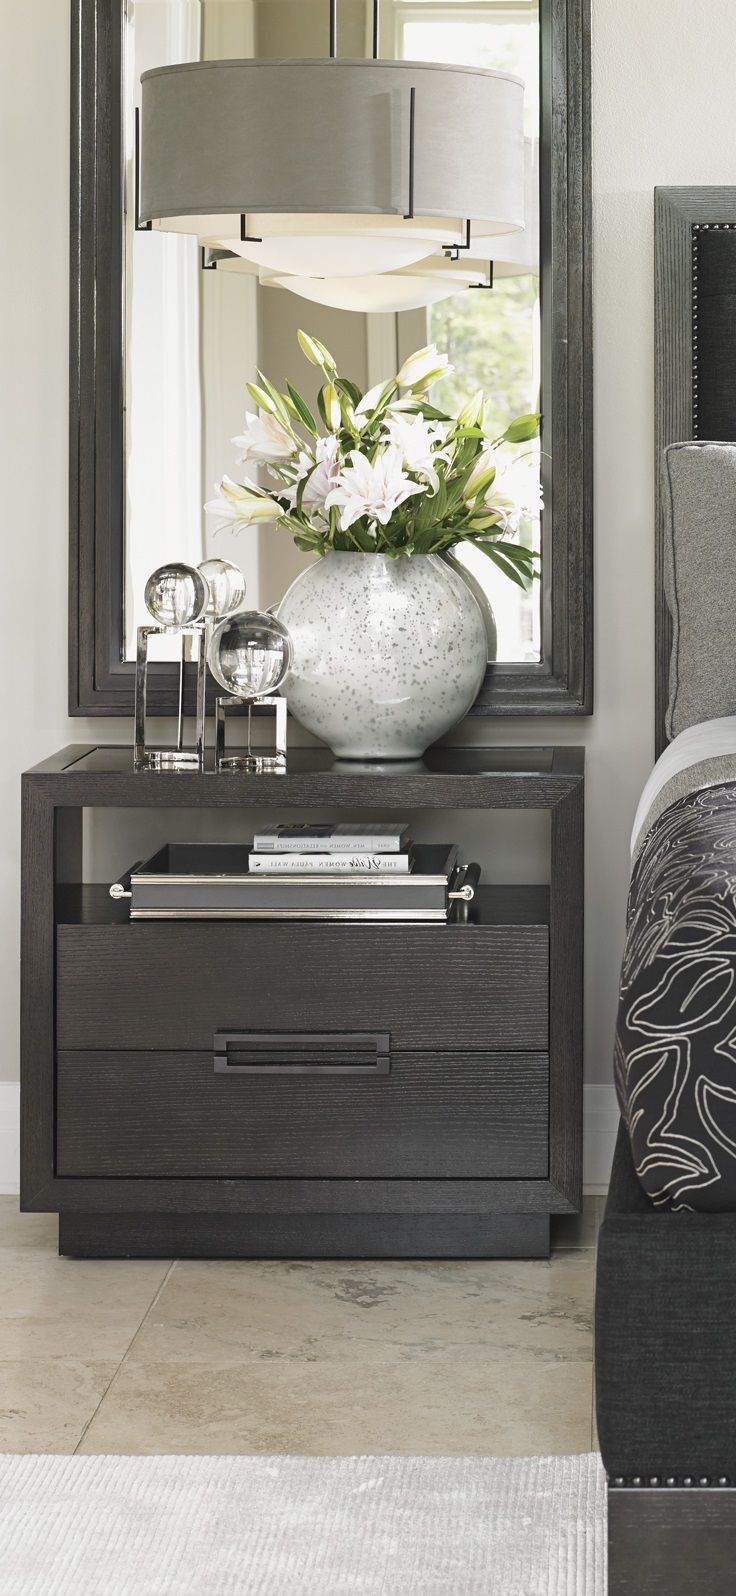 Grey nightstand bedroom decor ideas luxury furniture interior design ideas home decor ideas Master bedroom with grey furniture